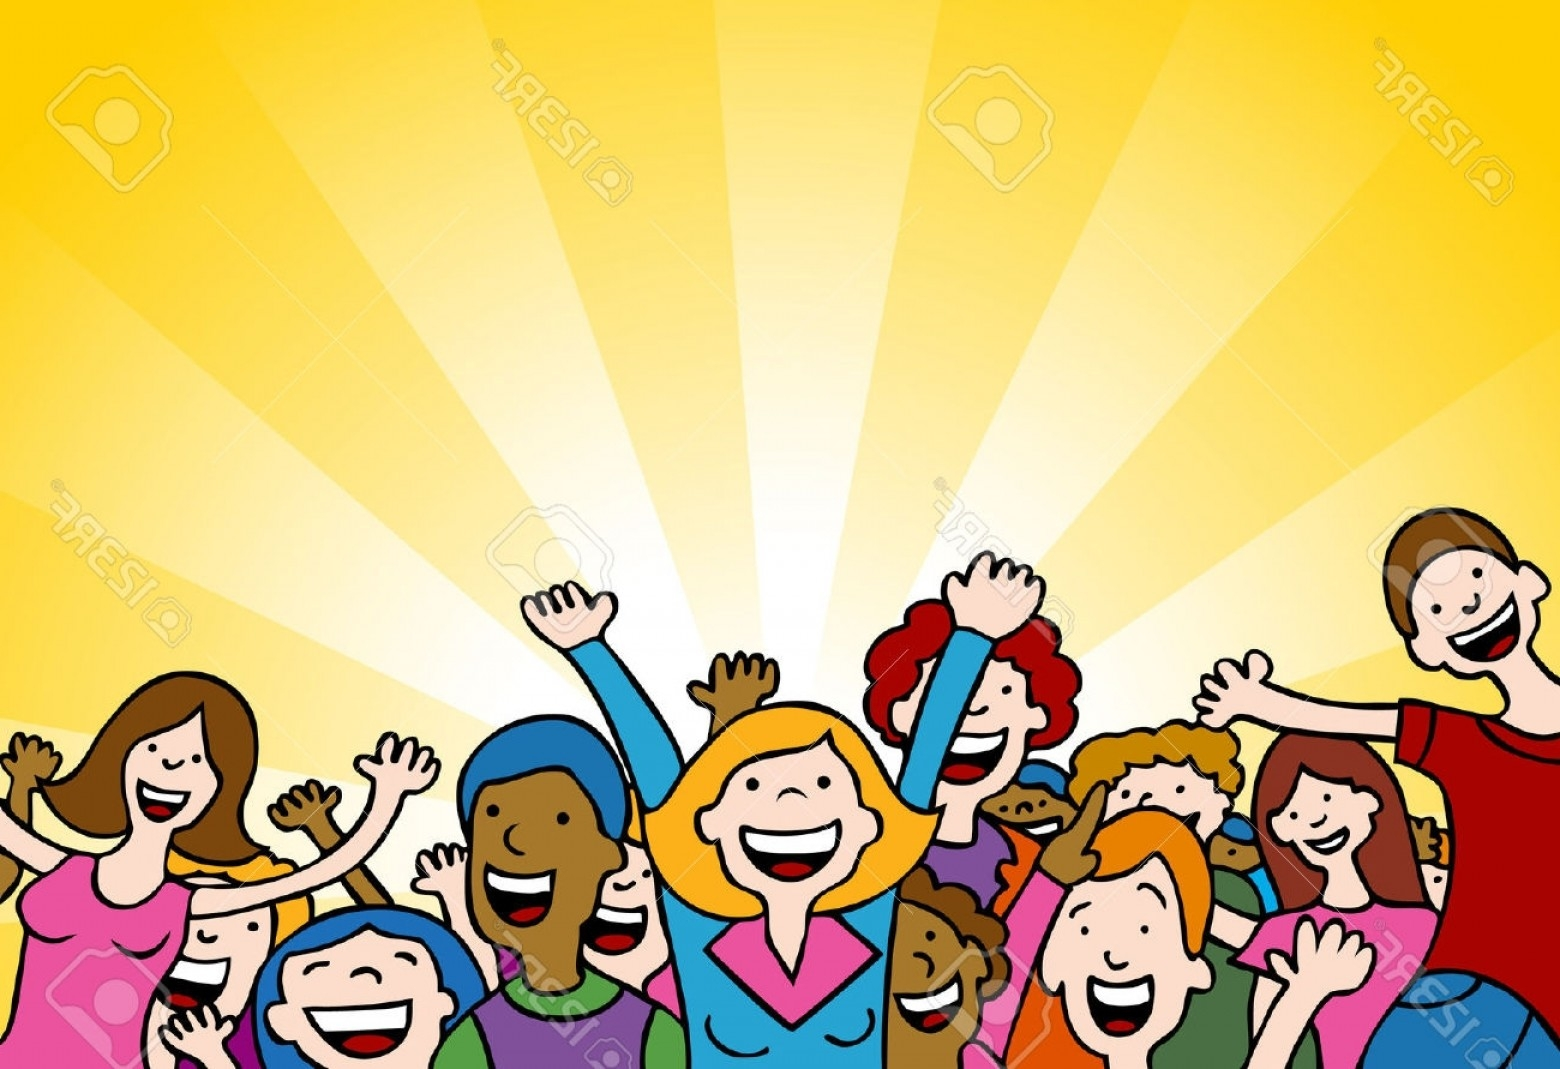 Collection of free download. Applause clipart audience applause